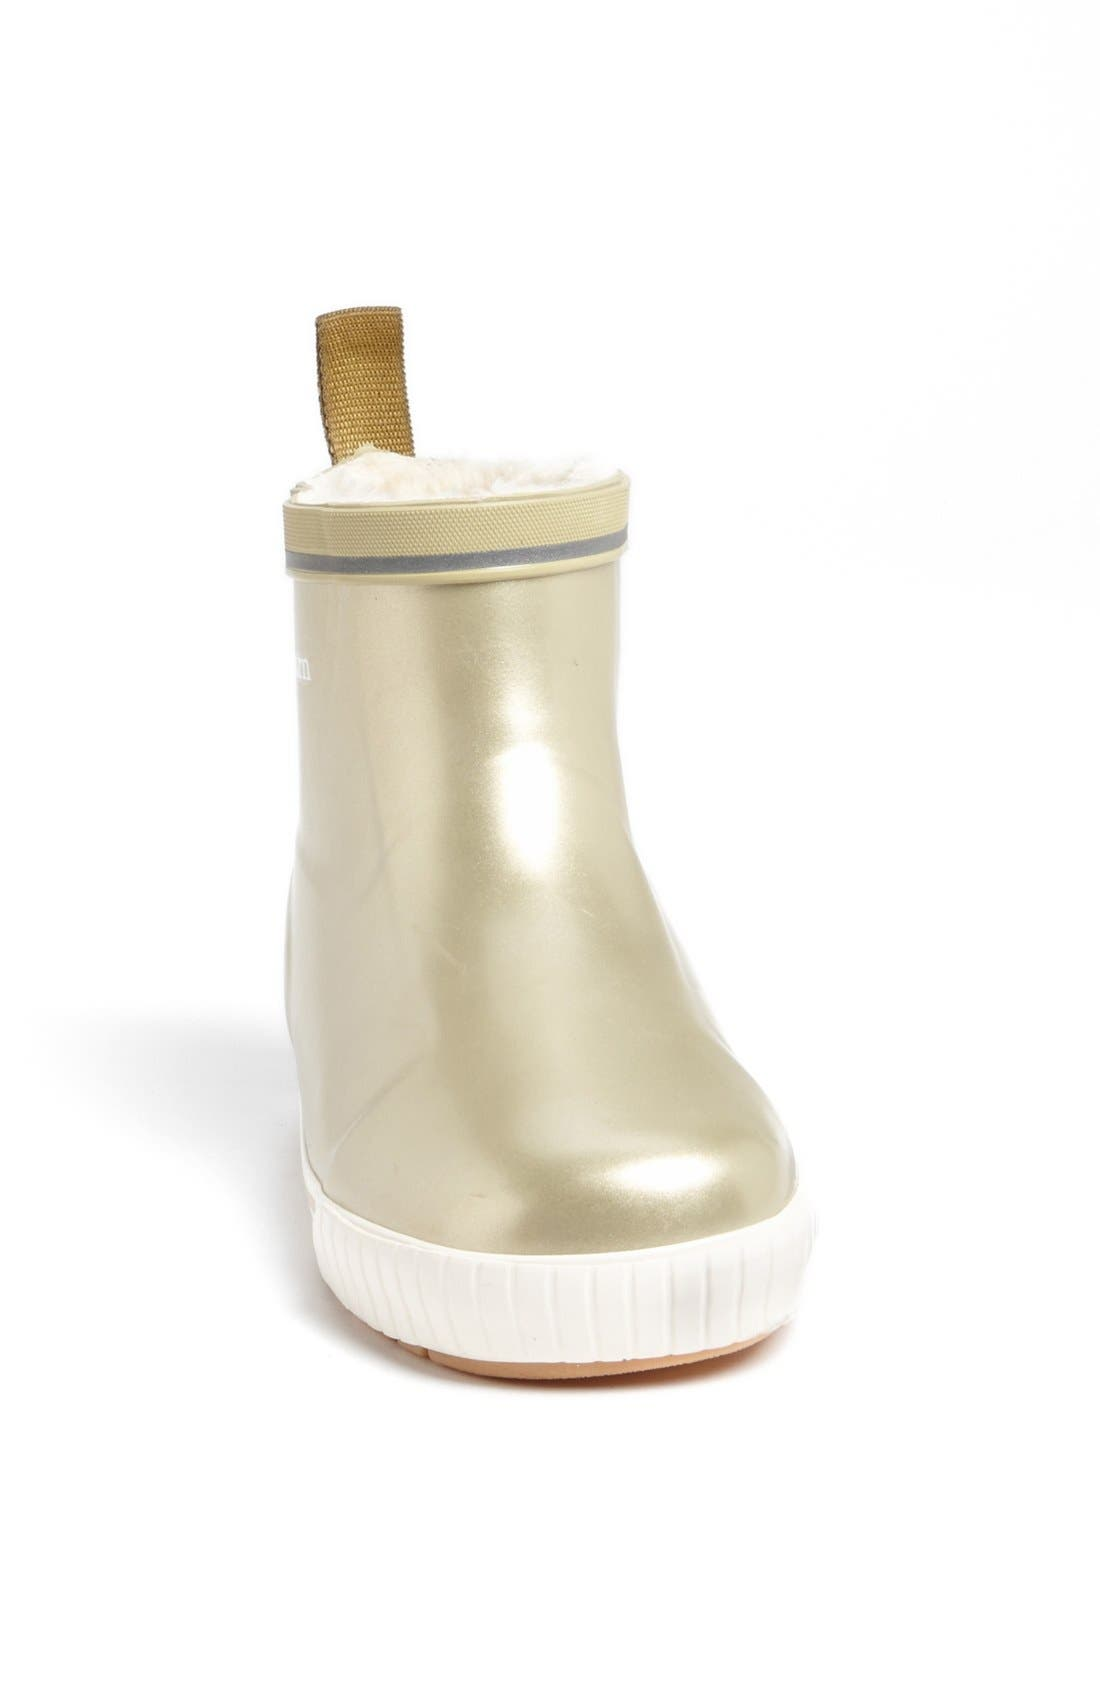 'Skerry Spritz Vinter' Waterproof Boot,                             Alternate thumbnail 3, color,                             Gold